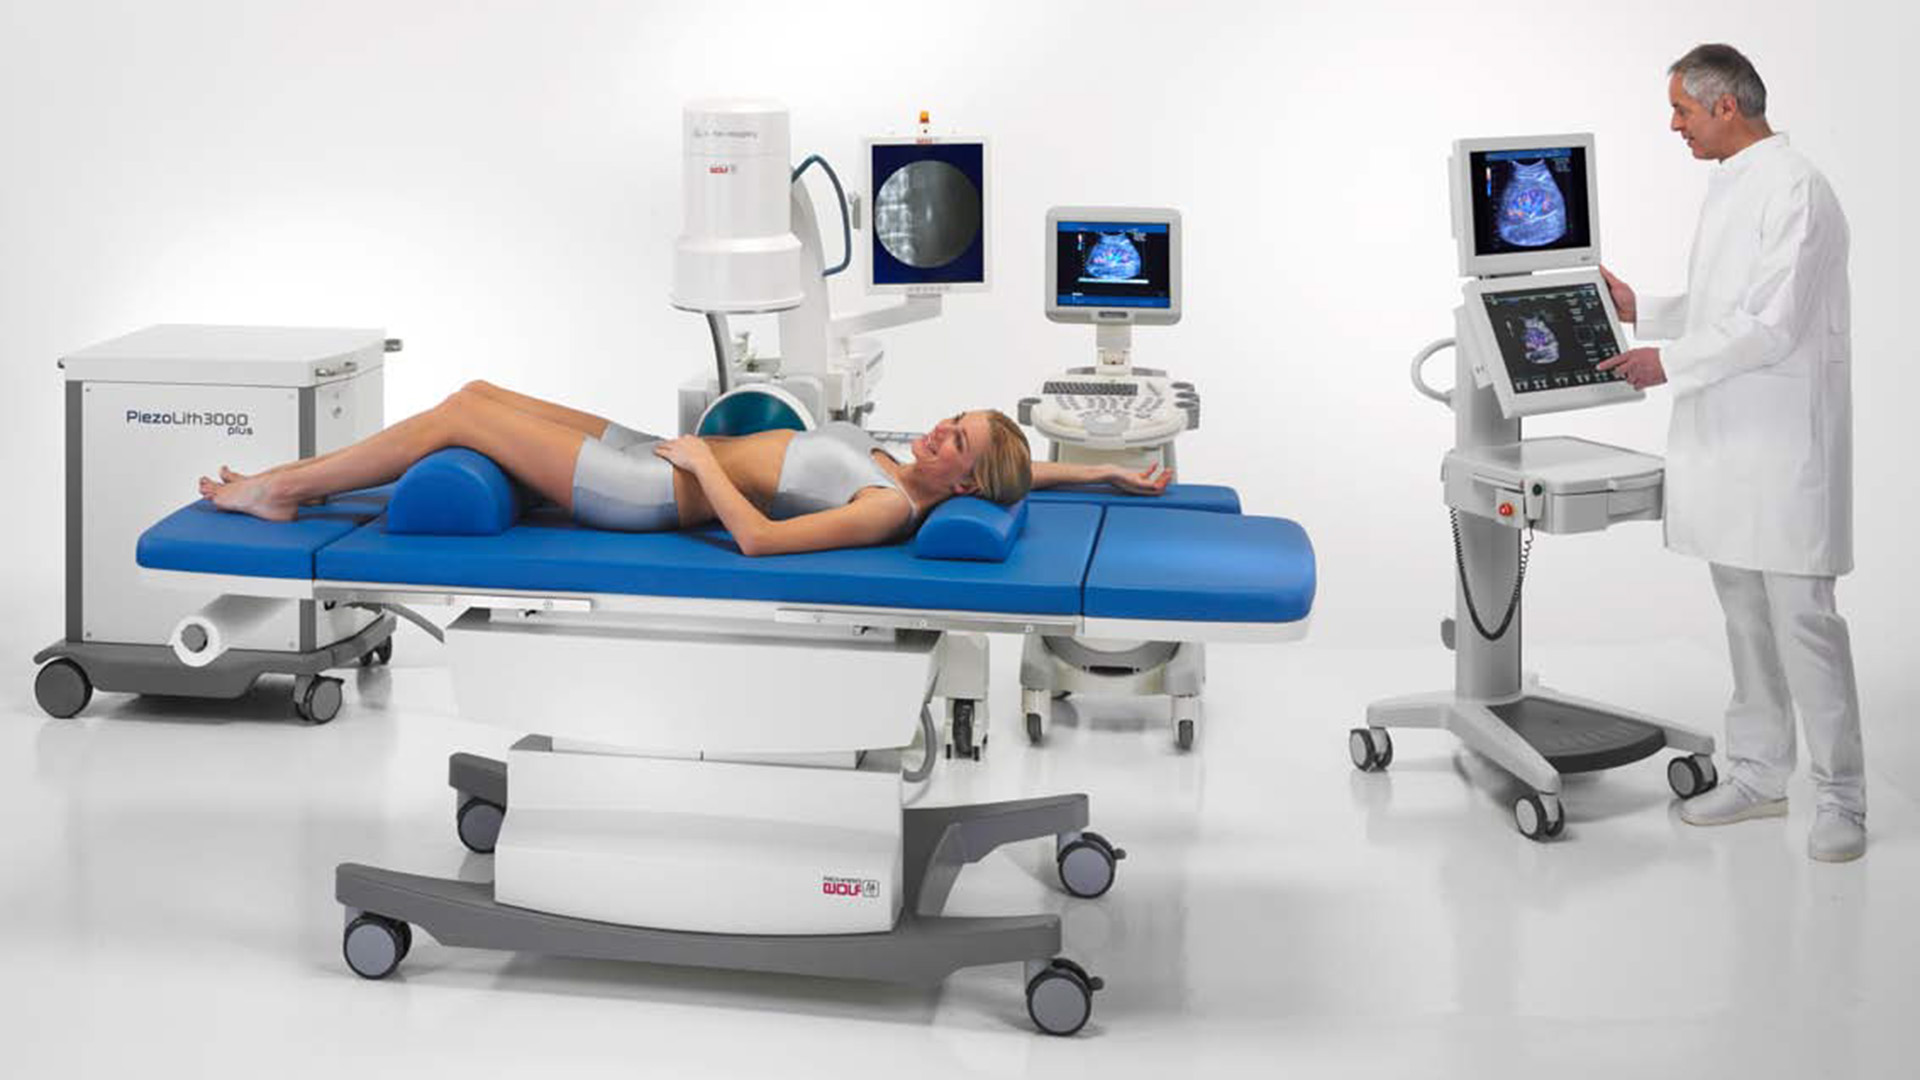 NHS Managed Lithotripsy and Shcok-wave Services